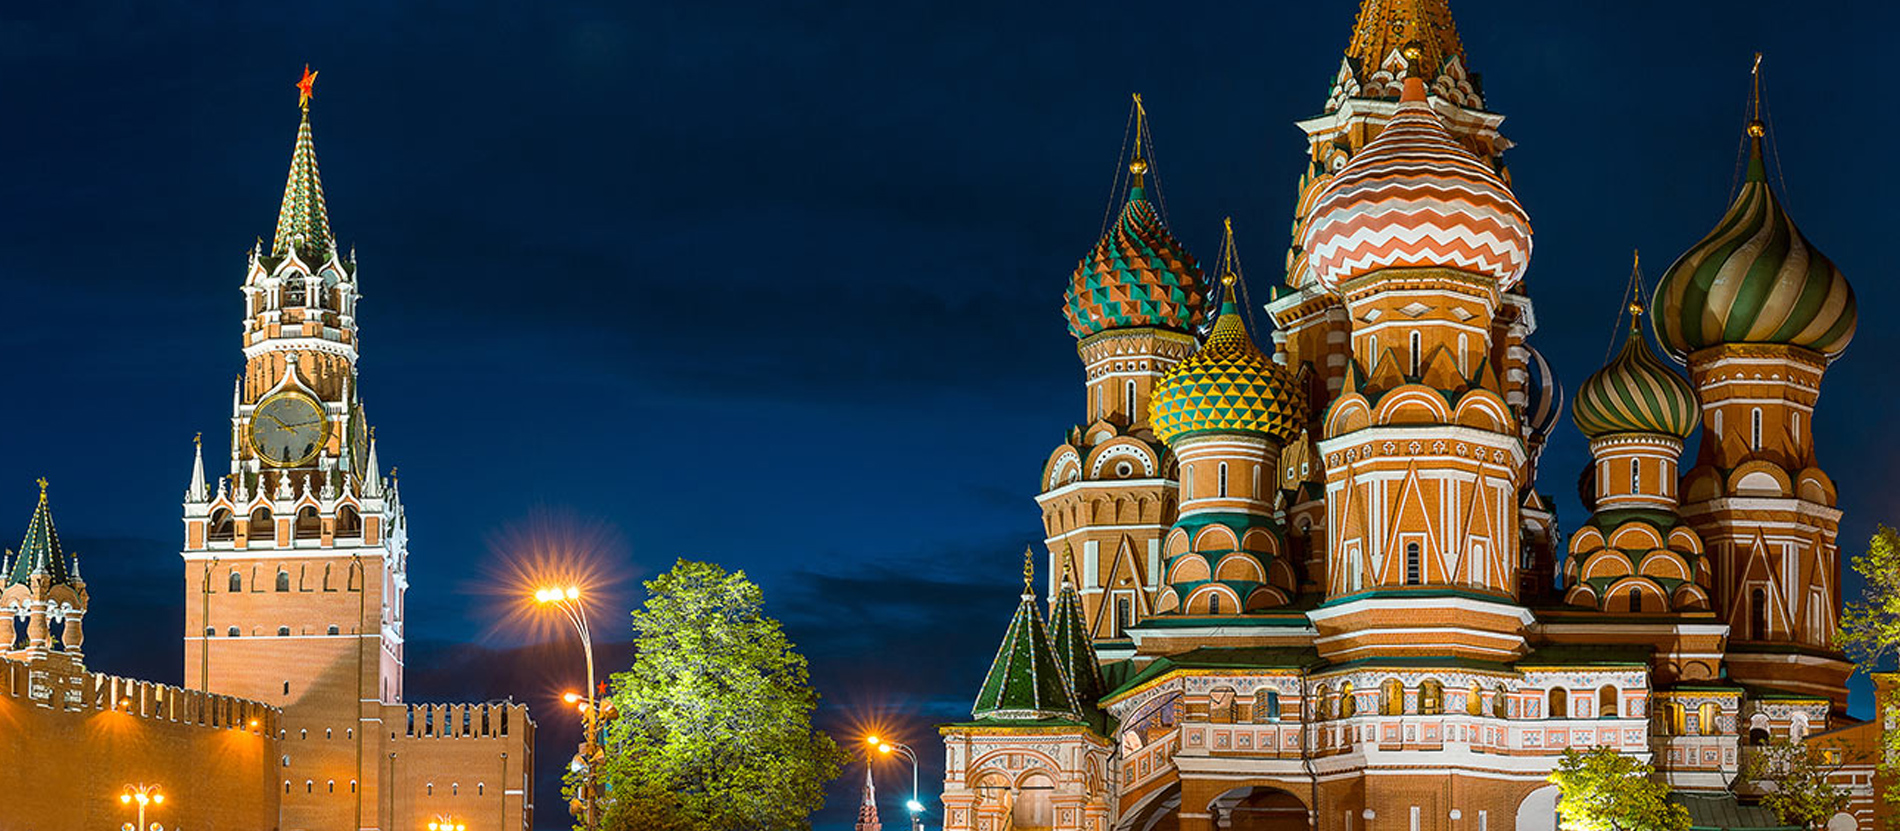 history of moscow s kremlin and red square